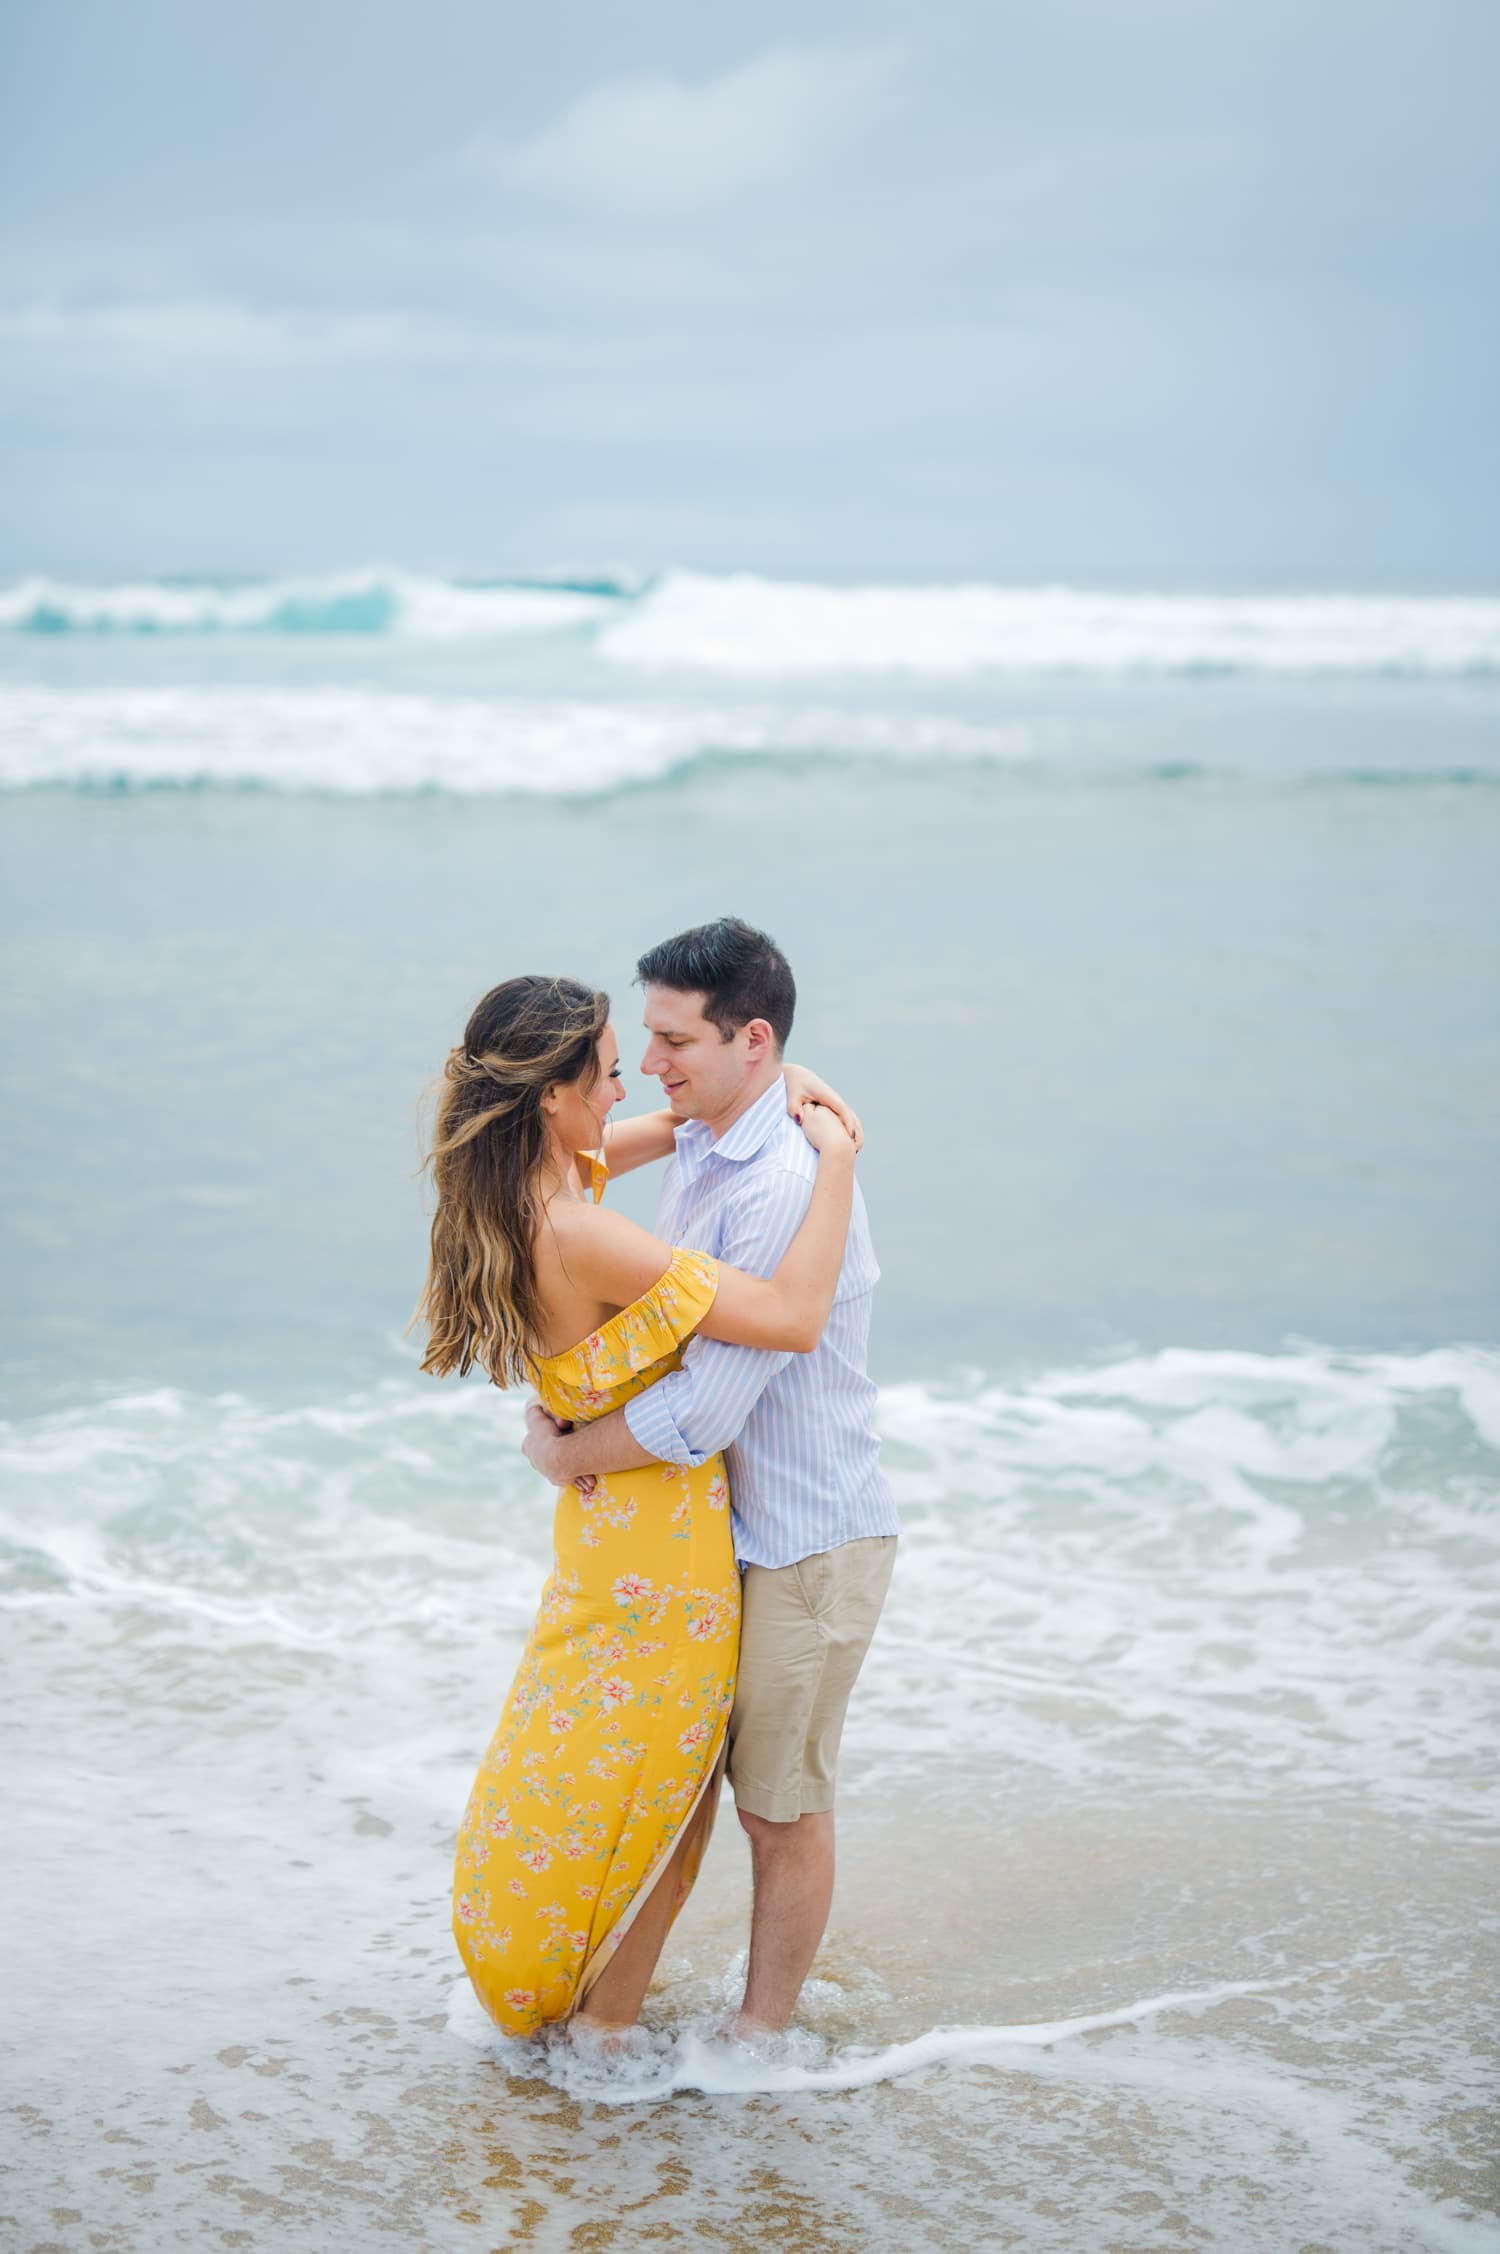 wedding photographer Camille Fontz captures a beach engagement portrait session in Aguadilla, Puerto Rico